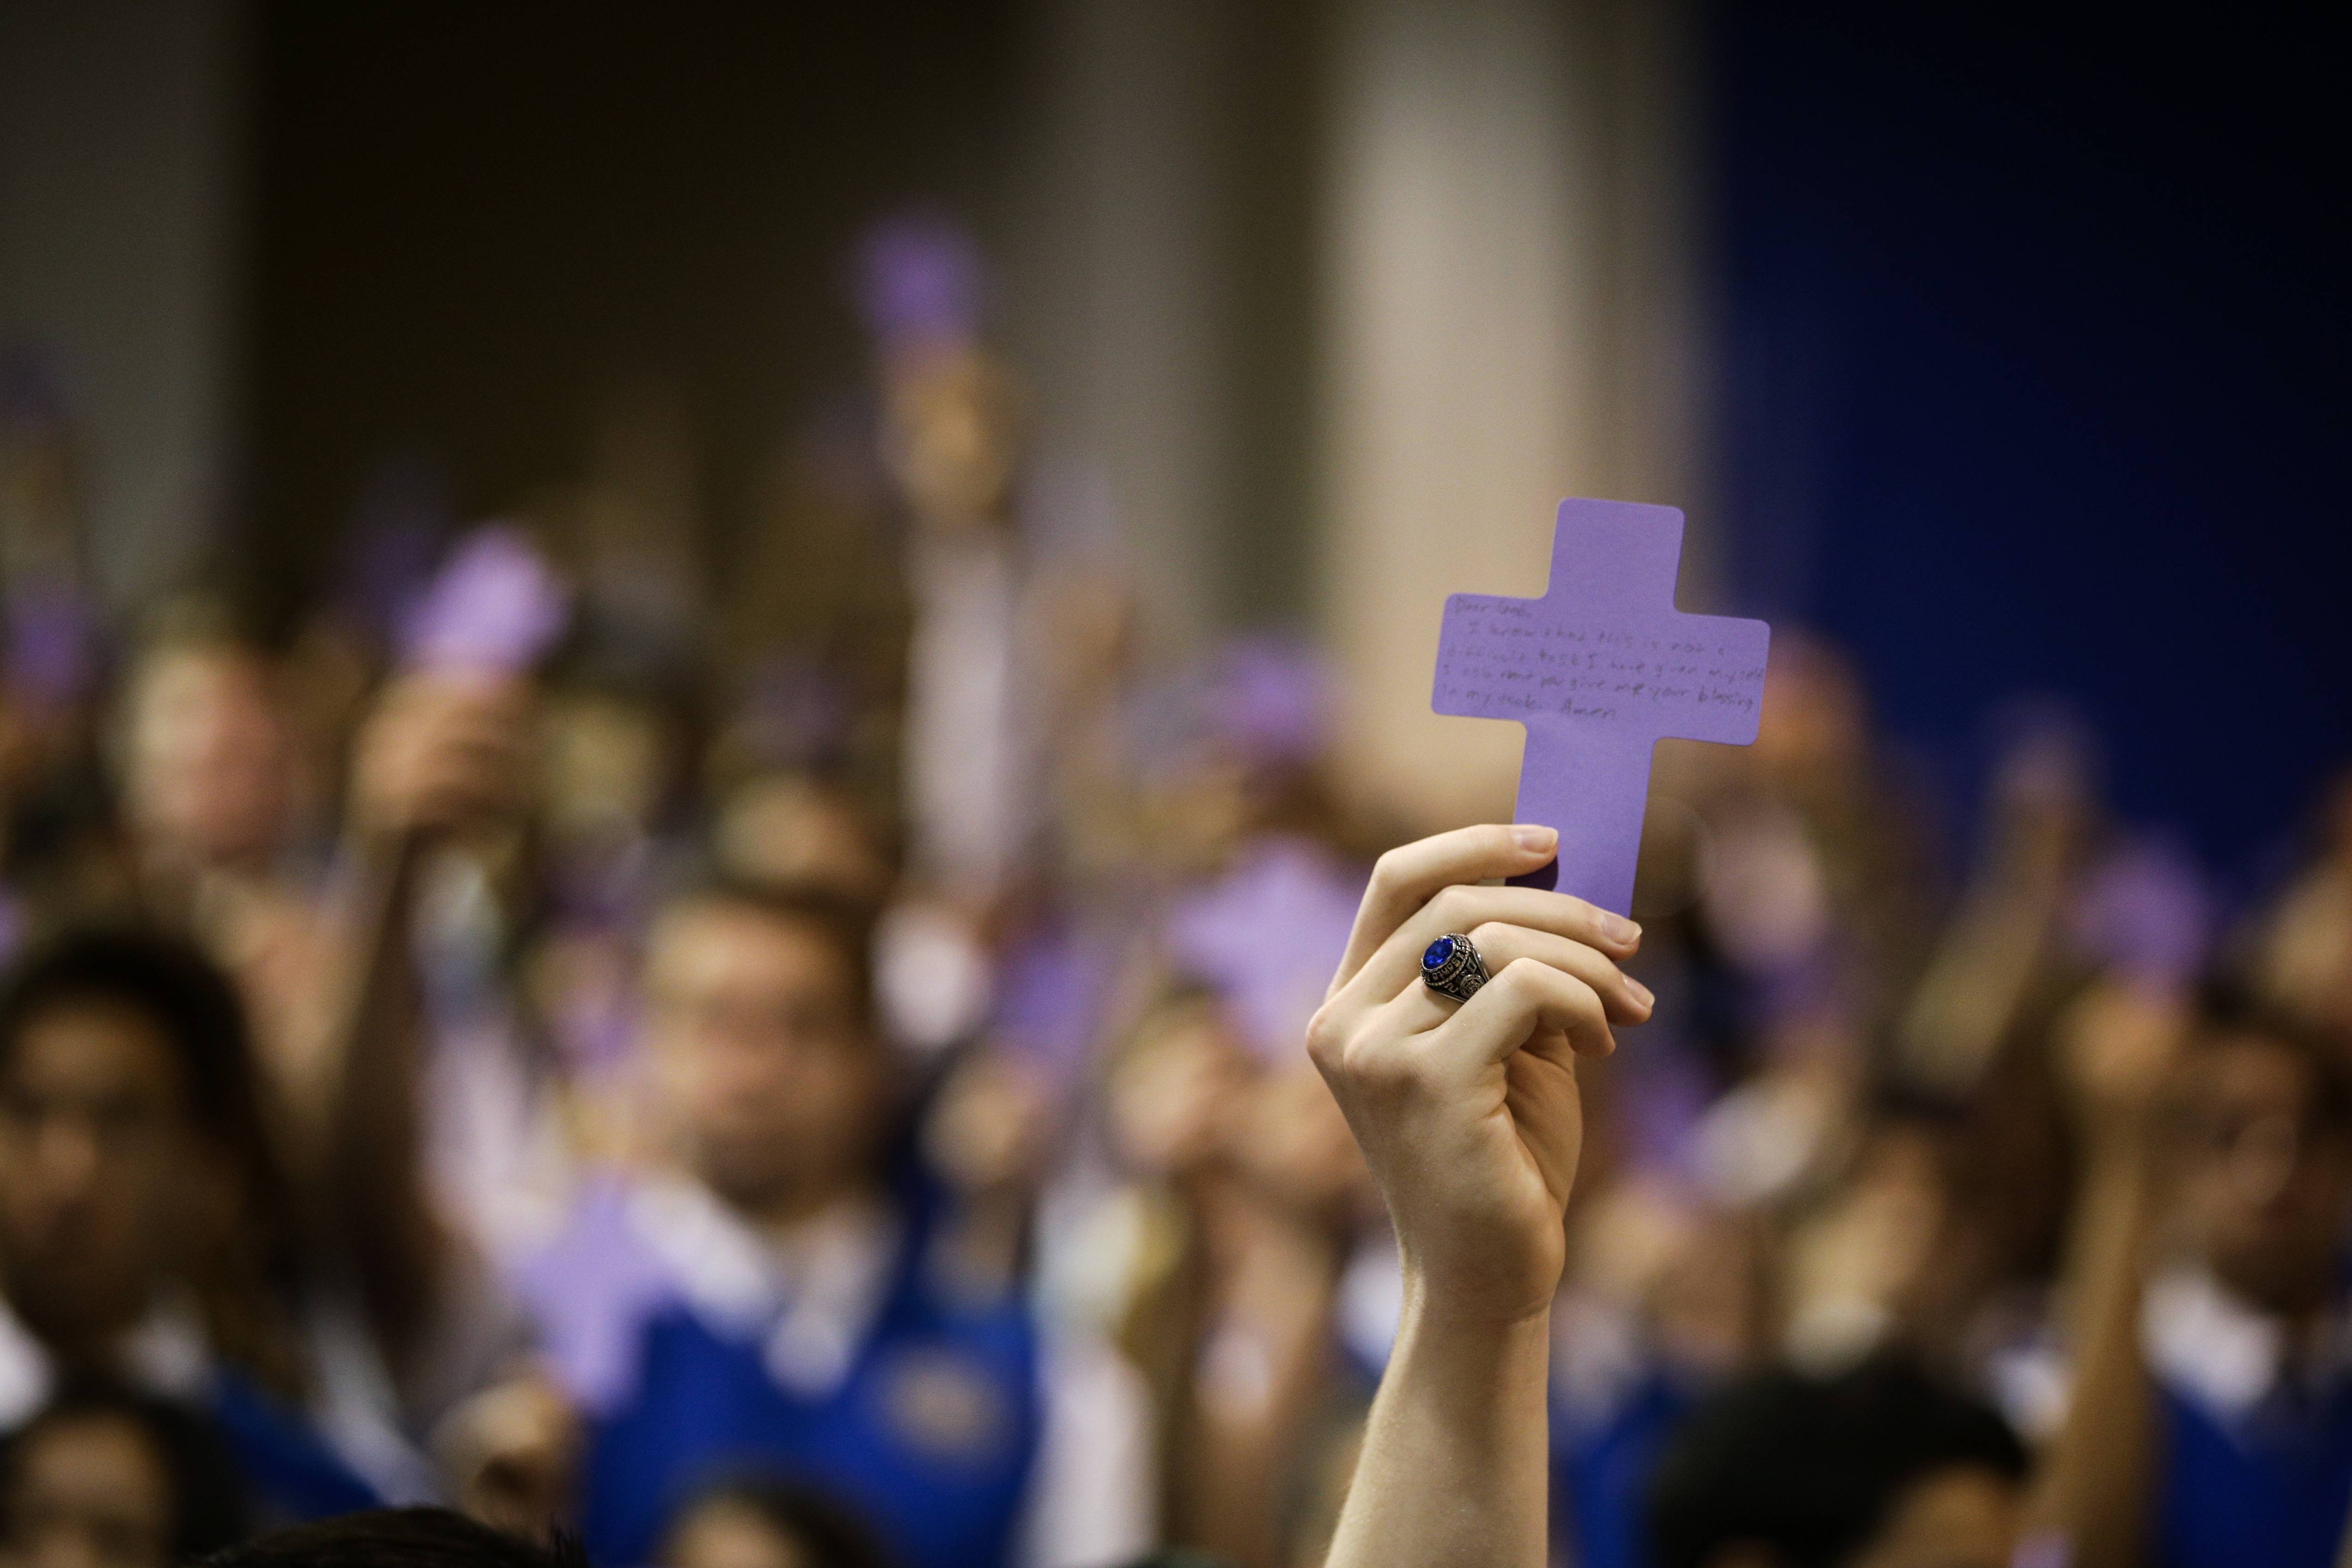 Students hold up paper crosses during an Ash Wednesday Mass at Santa Margarita Catholic High School on Wednesday, March 5, 2014, in Rancho Santa Margarita, Calif.